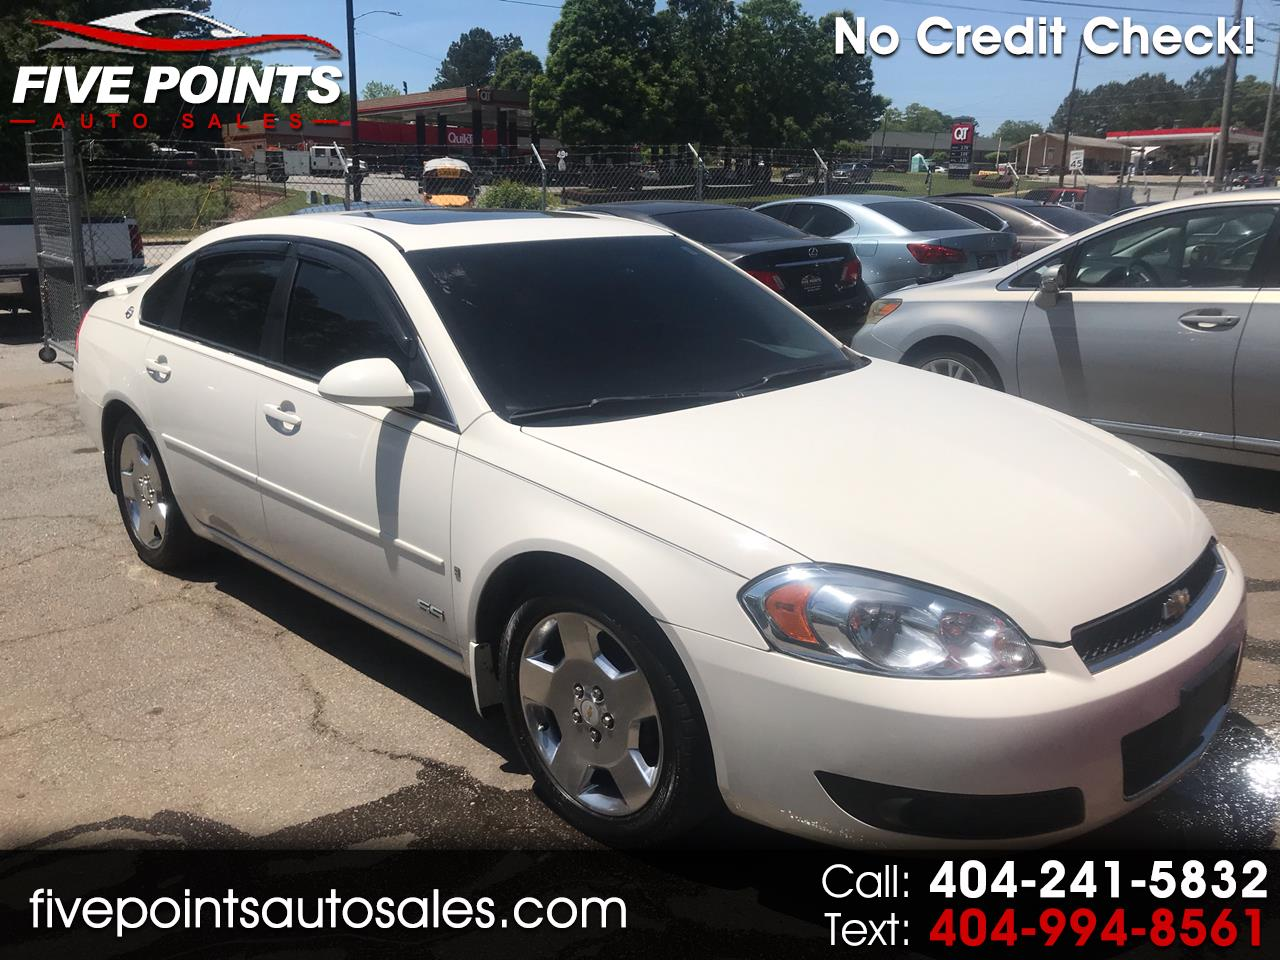 Five Points Auto Sales >> Buy Here Pay Here 2008 Chevrolet Impala For Sale In Decatur Ga